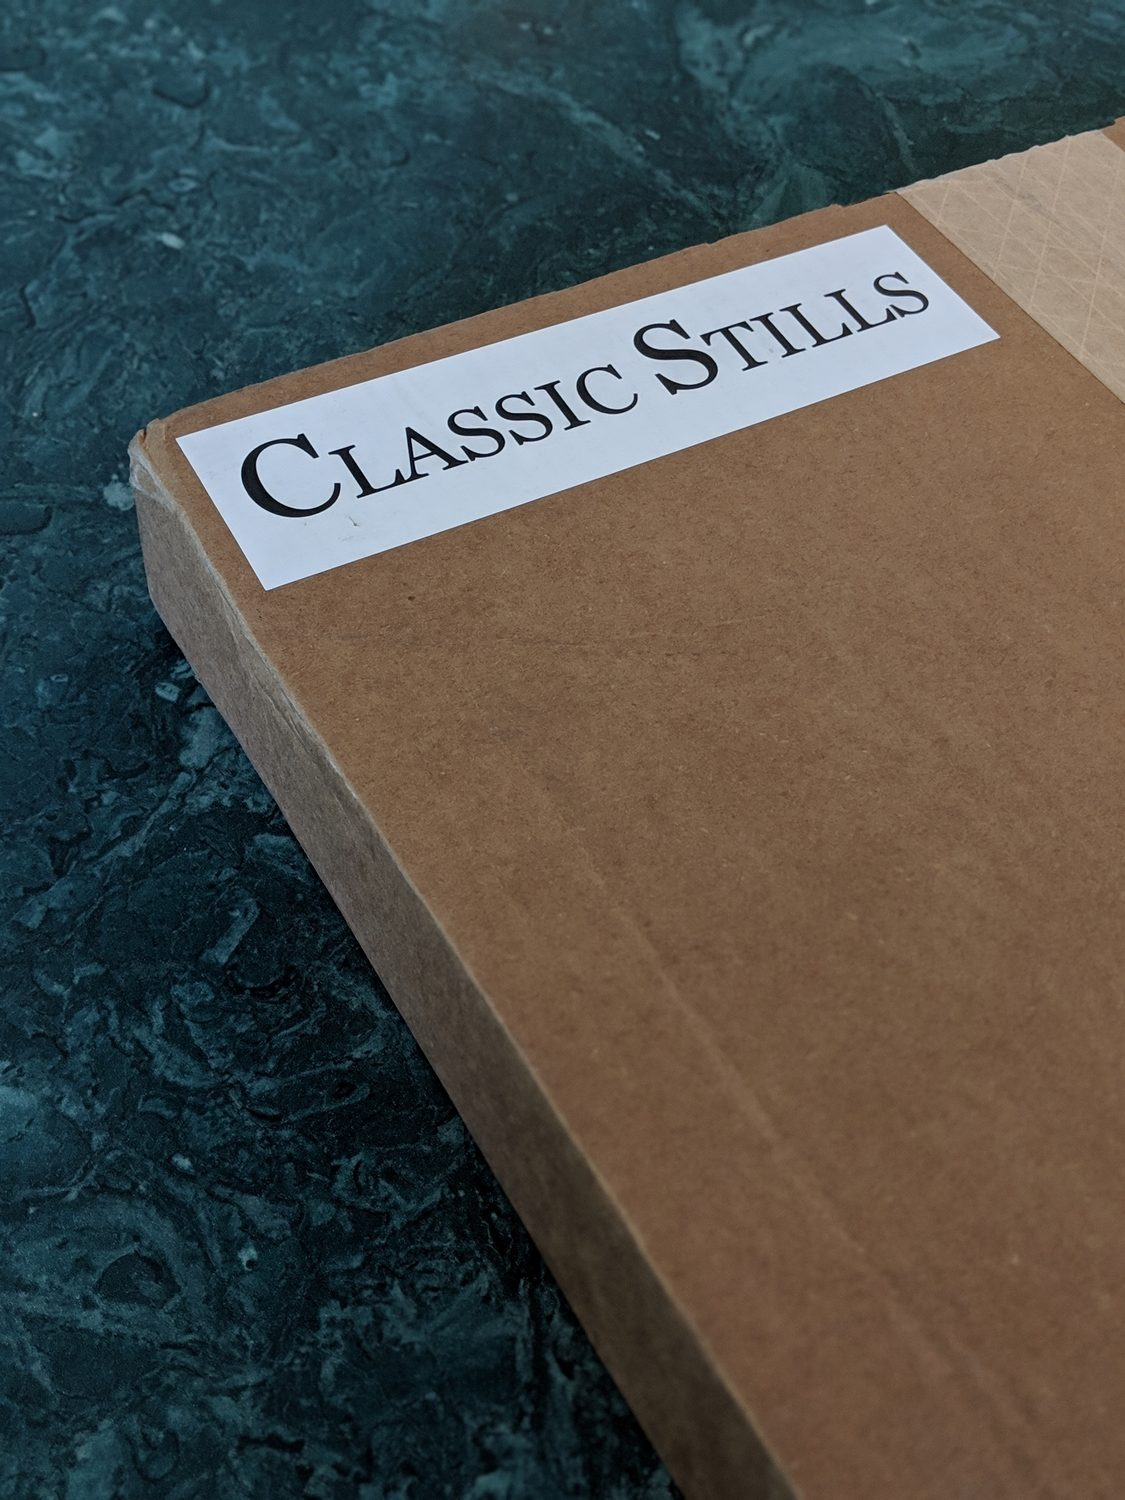 A close-up photo of the Classic Stills stickered logo